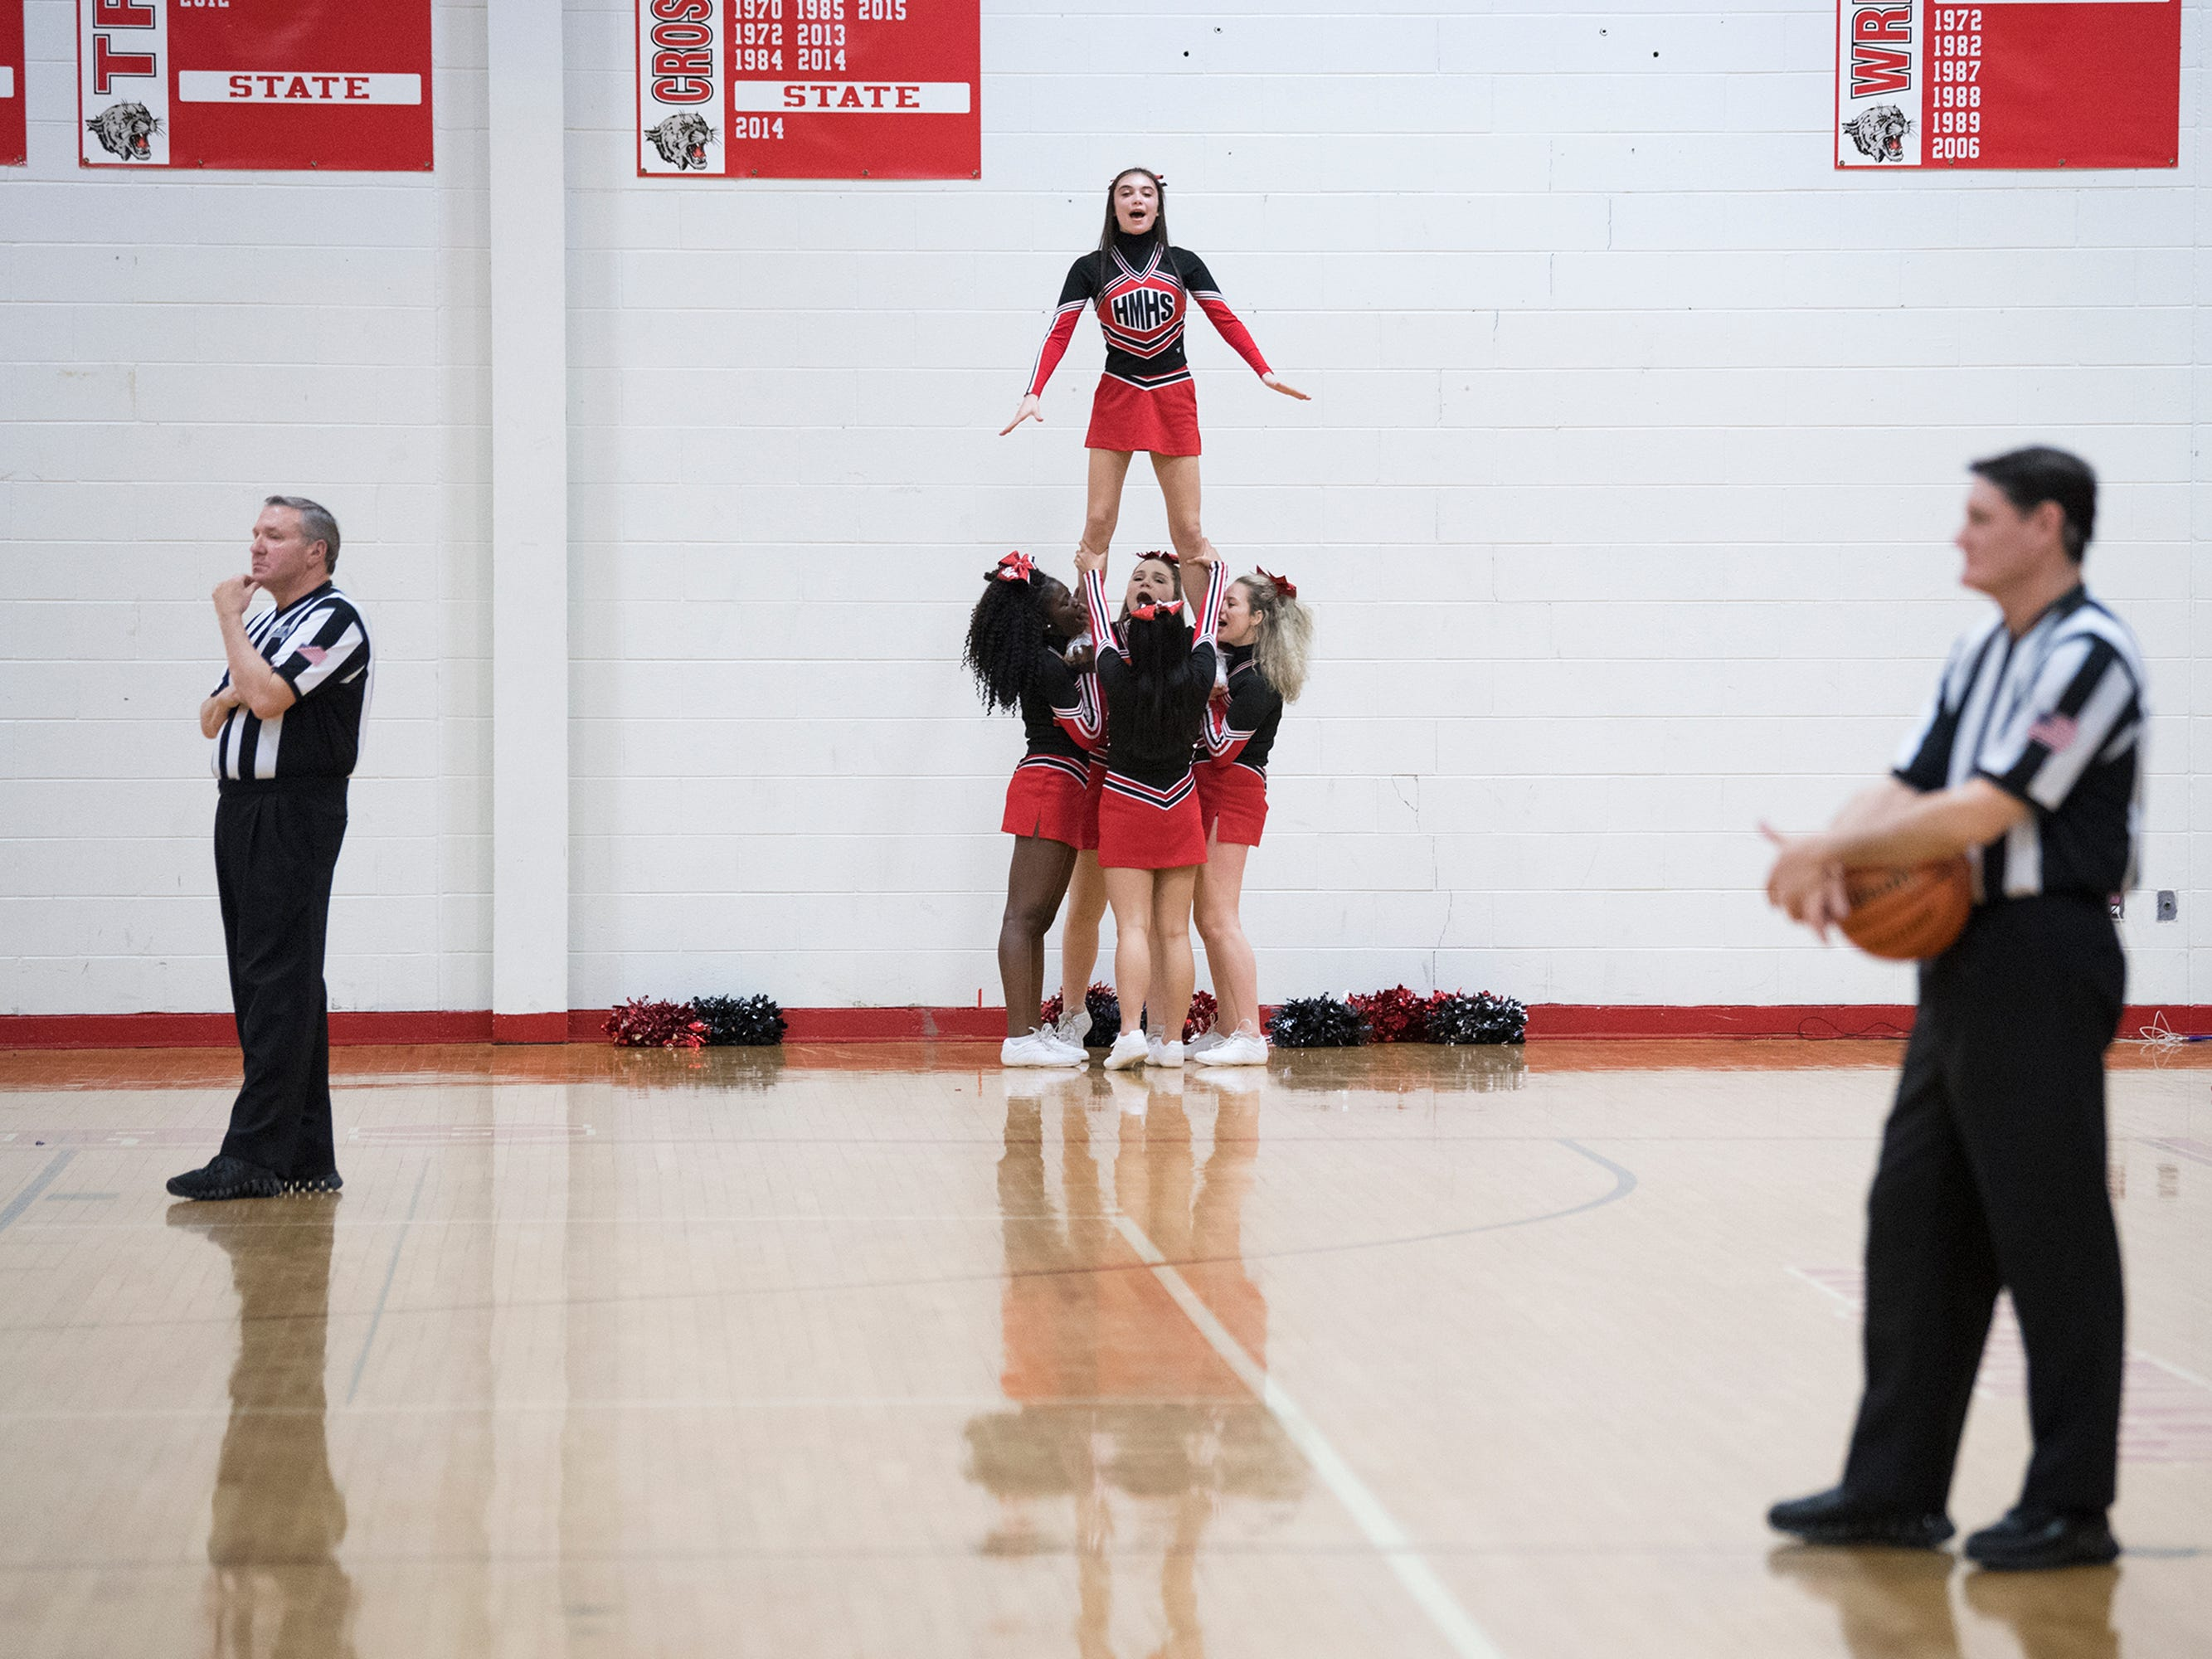 Haddonfield cheerleaders perform during a game against West Deptford Friday, March 1, 2019 at Cherry Hill High School East in Cherry Hill, N.J. Haddonfield won 51-30.